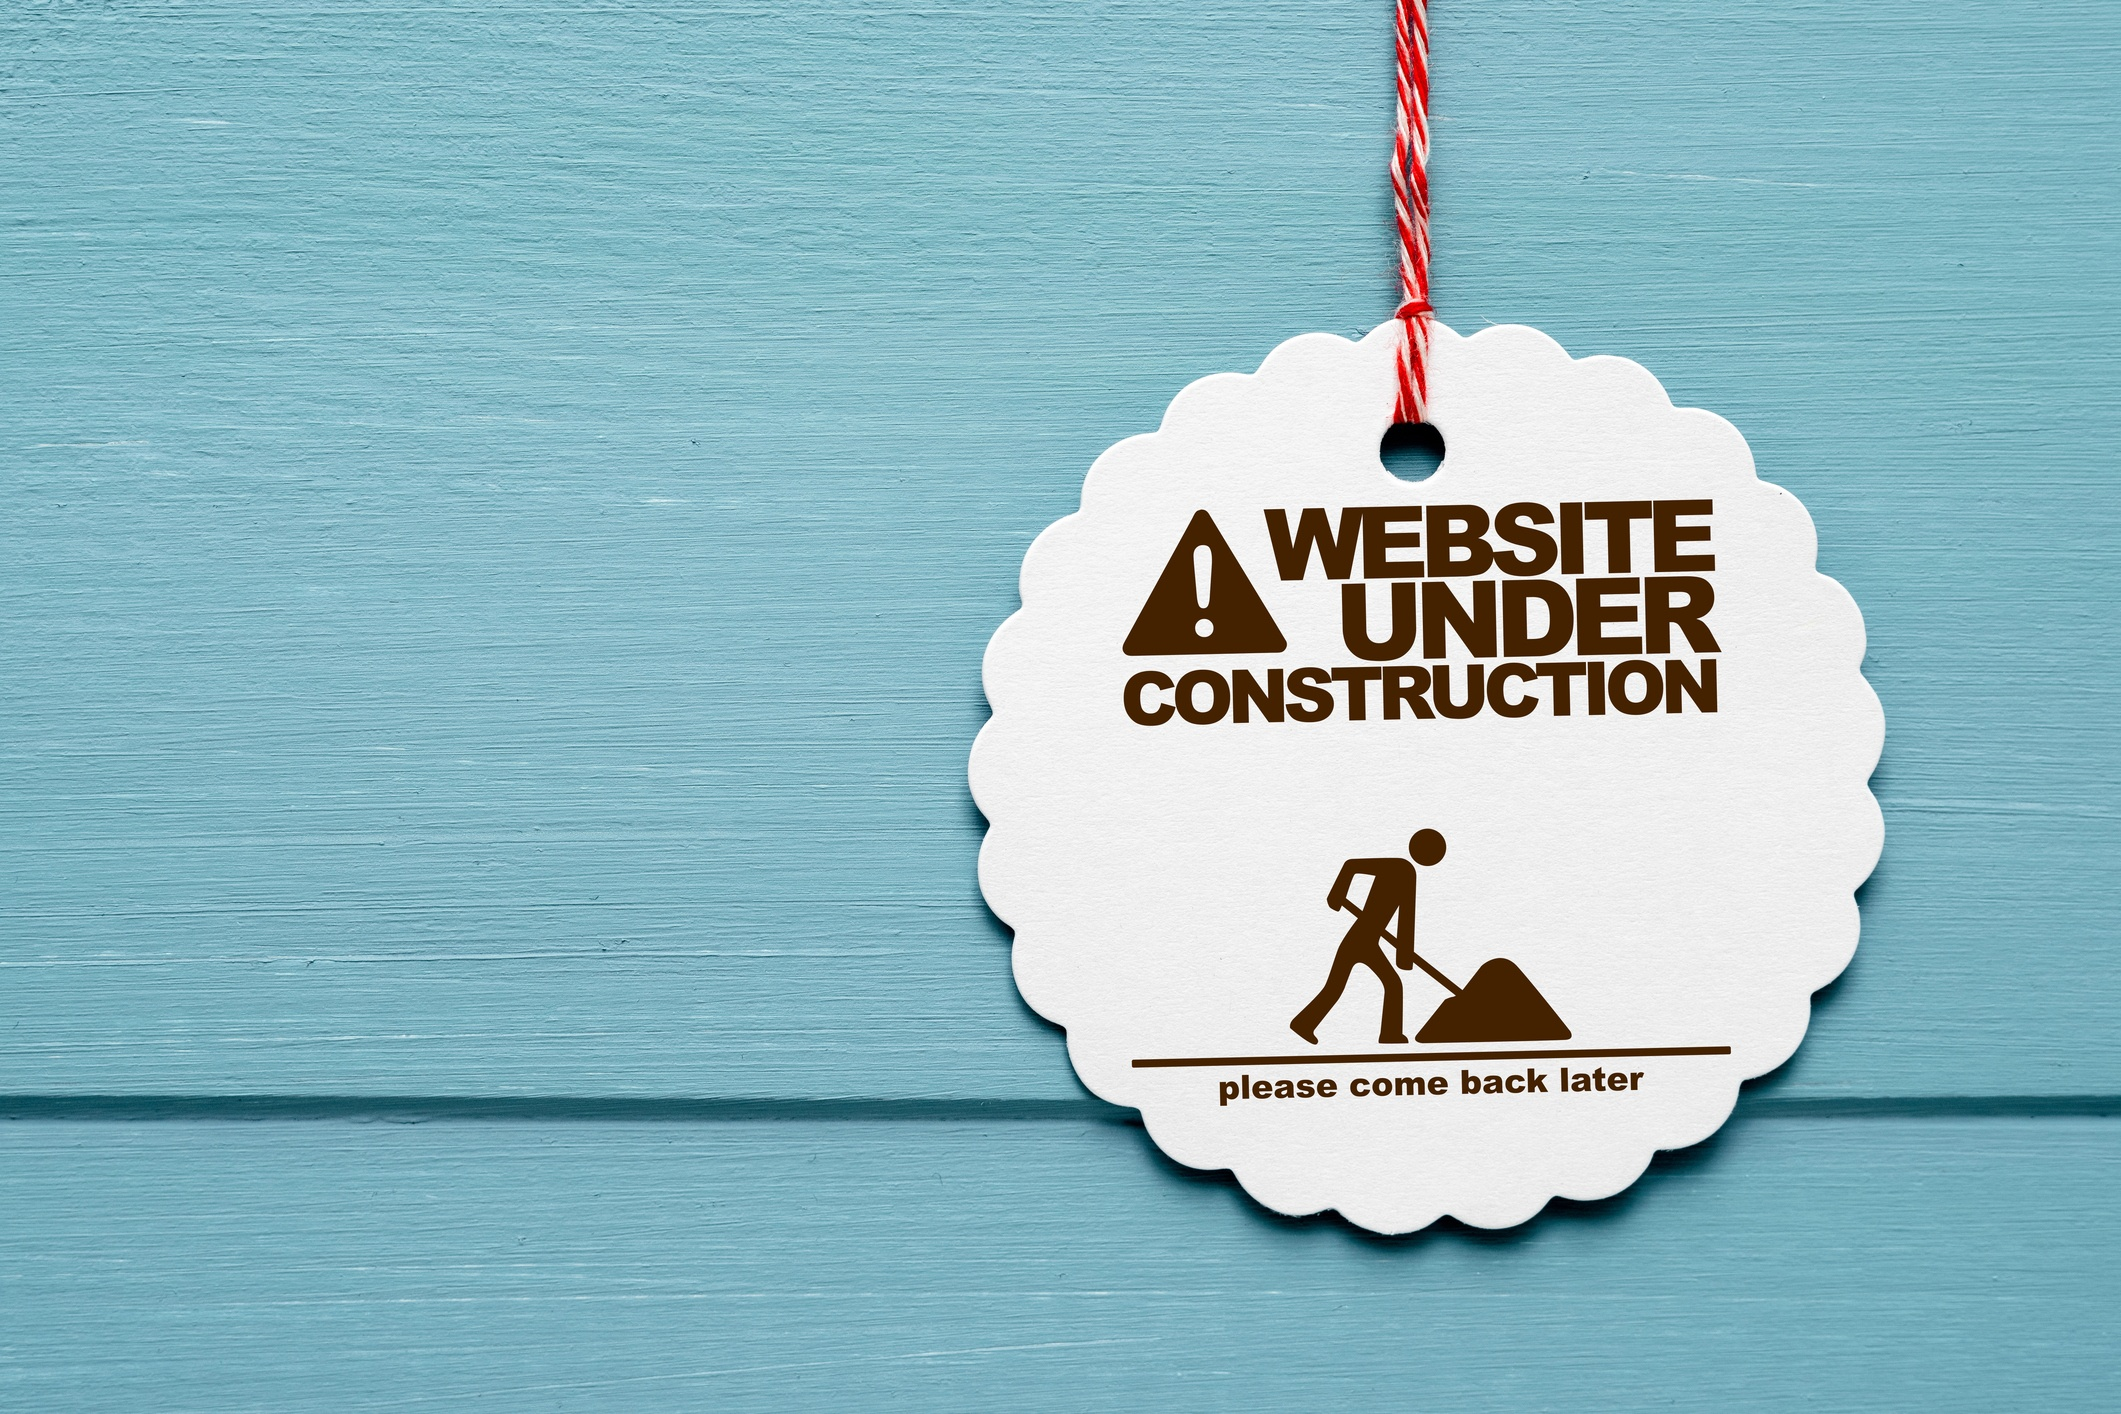 what-you-need-to-build-an-amazing-website.jpg